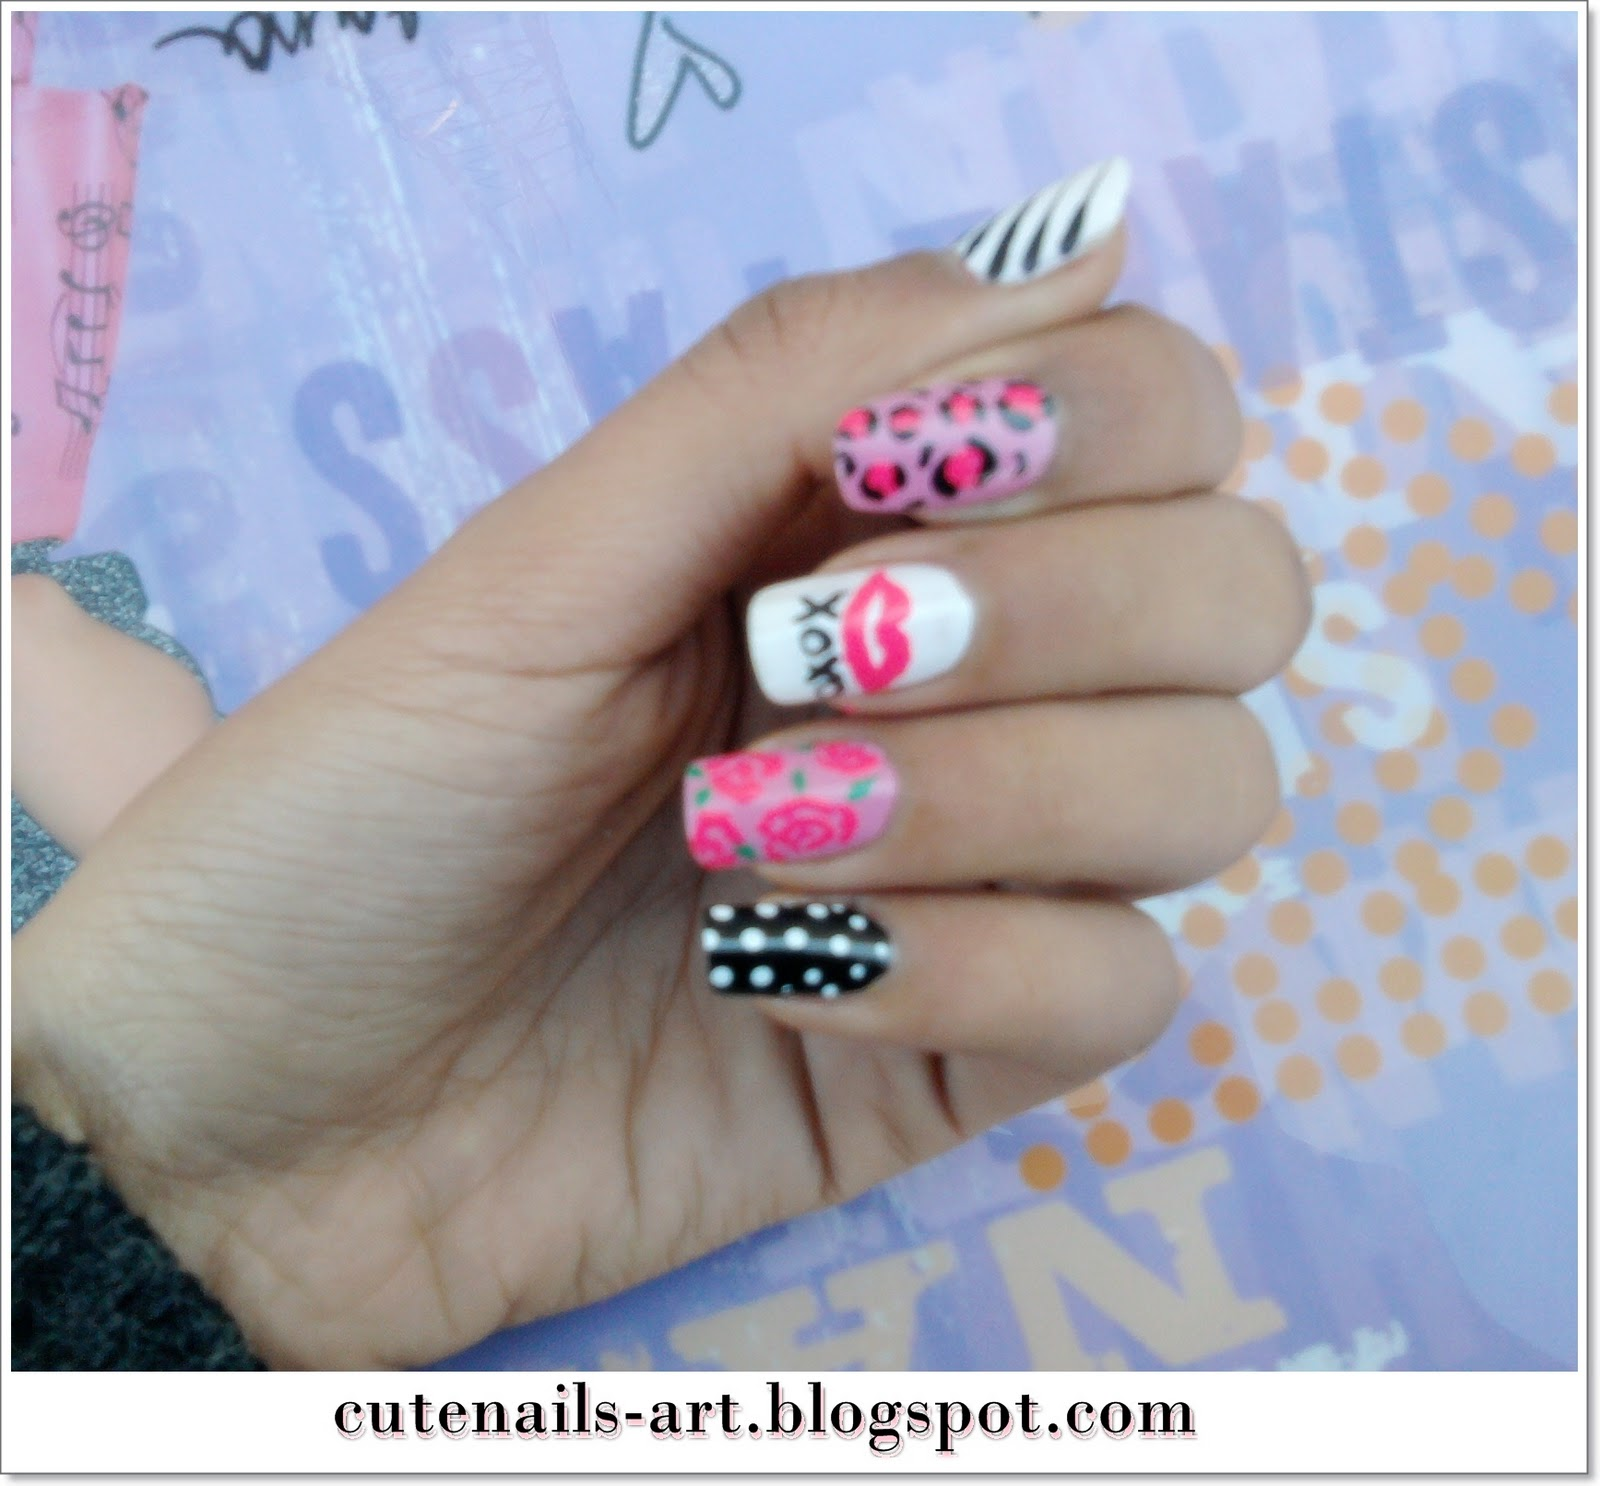 cutenails-art: Girly,pinky nails